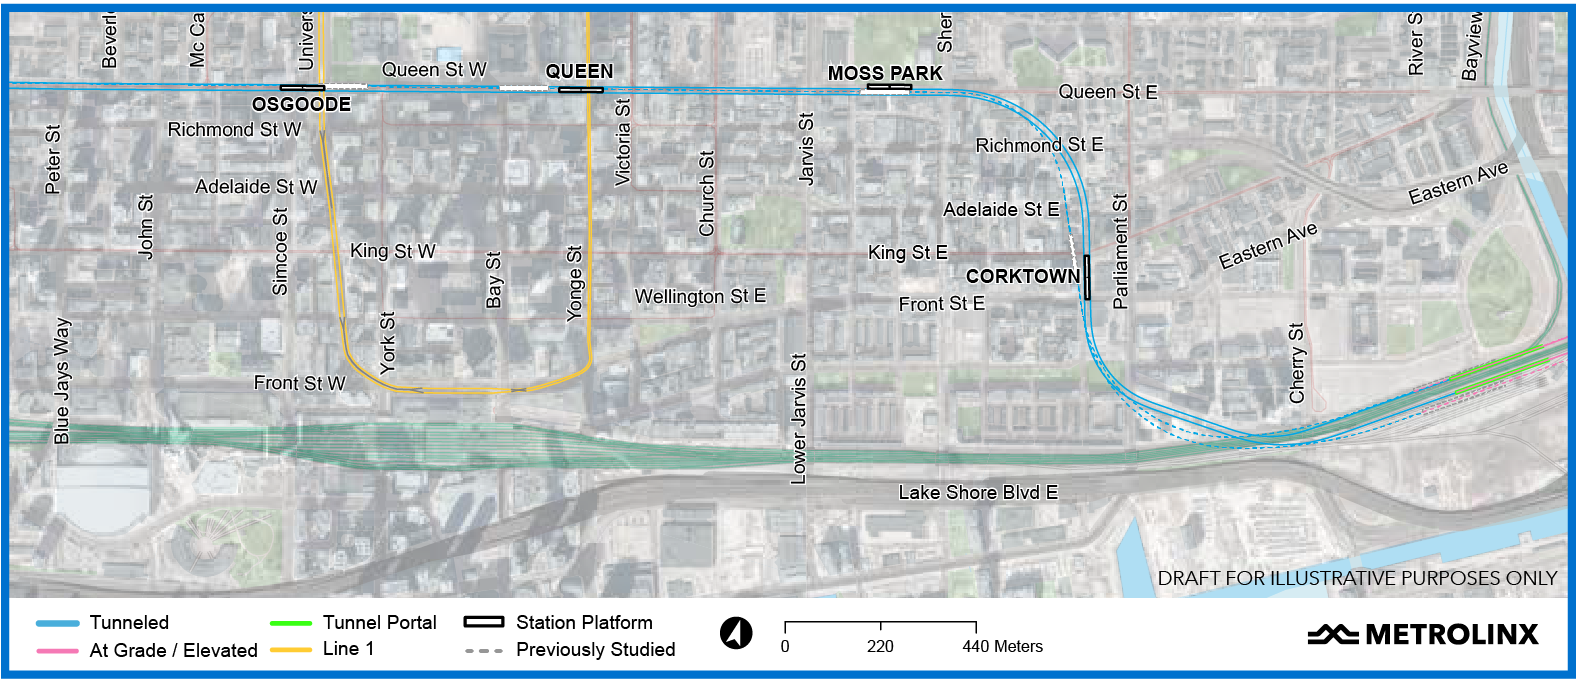 Metrolinx Fills In More Details of Downtown Section of Ontario Line